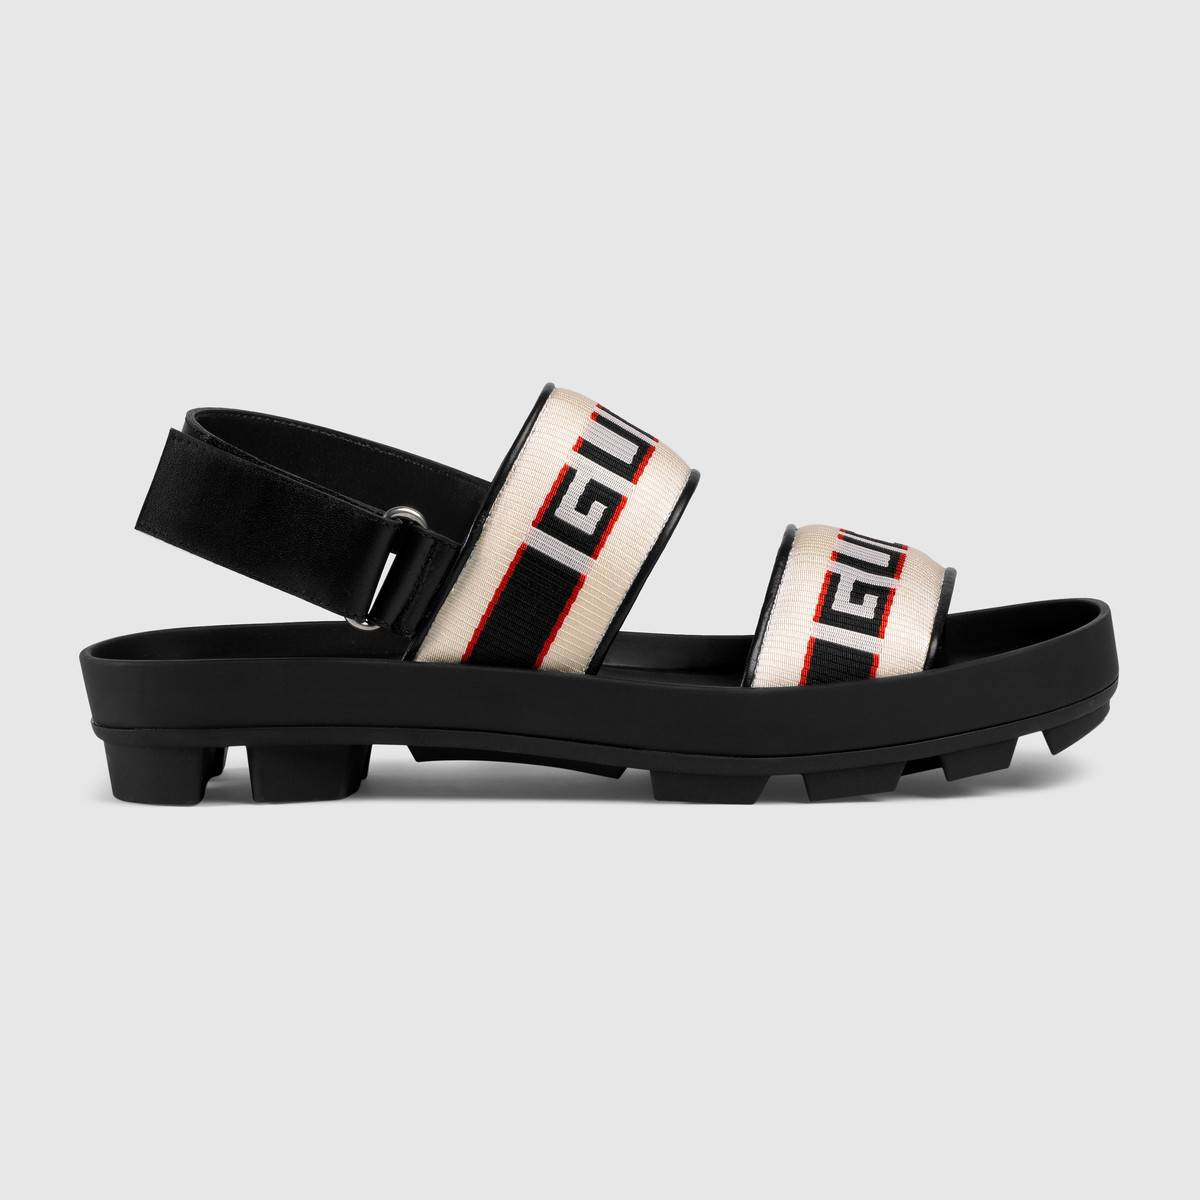 Gucci Drops New Sports Influenced Sandals for Summer